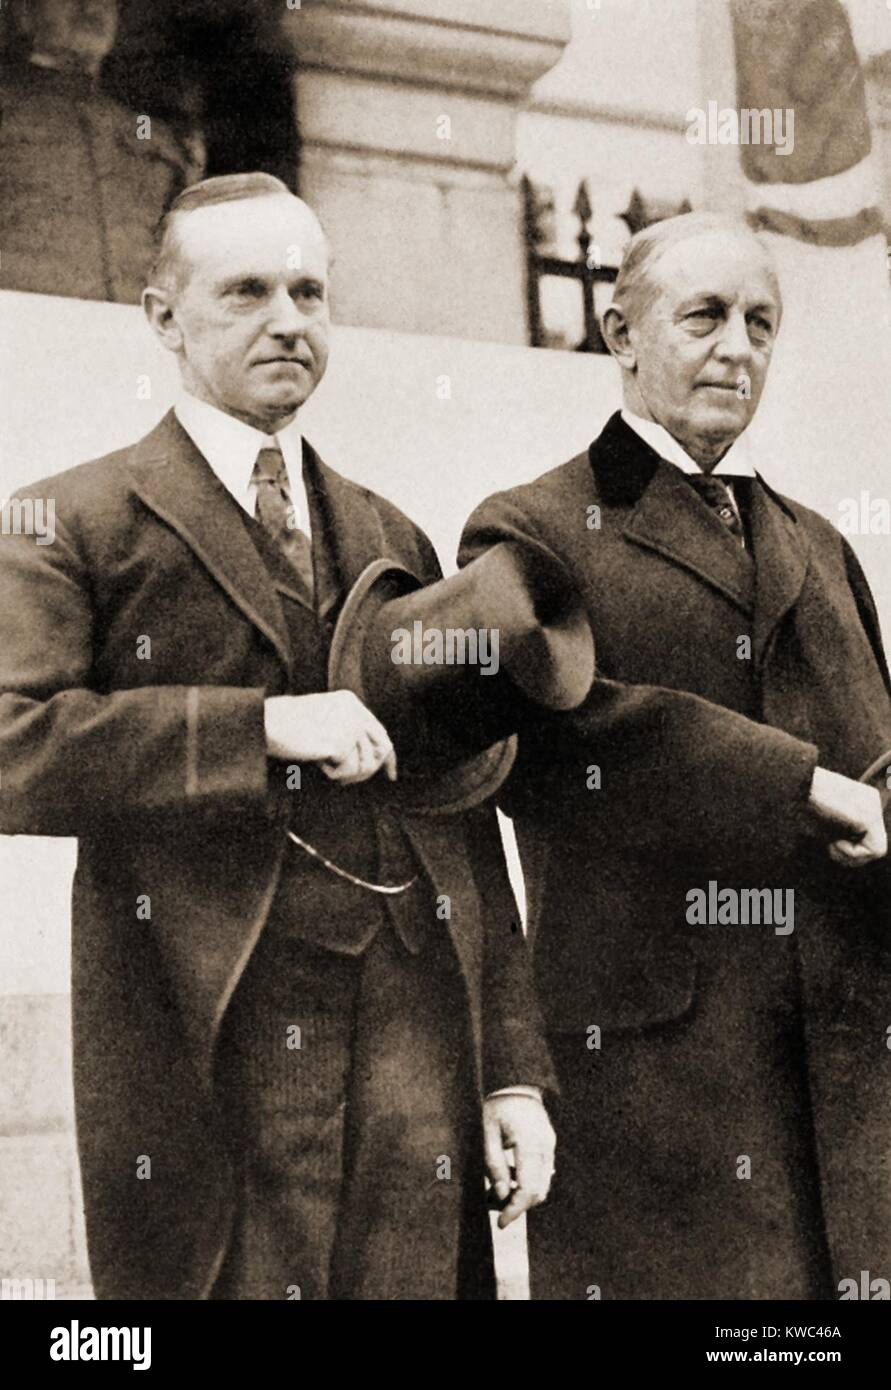 Calvin Coolidge and Edwin Curtis review parade of the Boston Police in 1920. The Governor and Police Commissioner - Stock Image